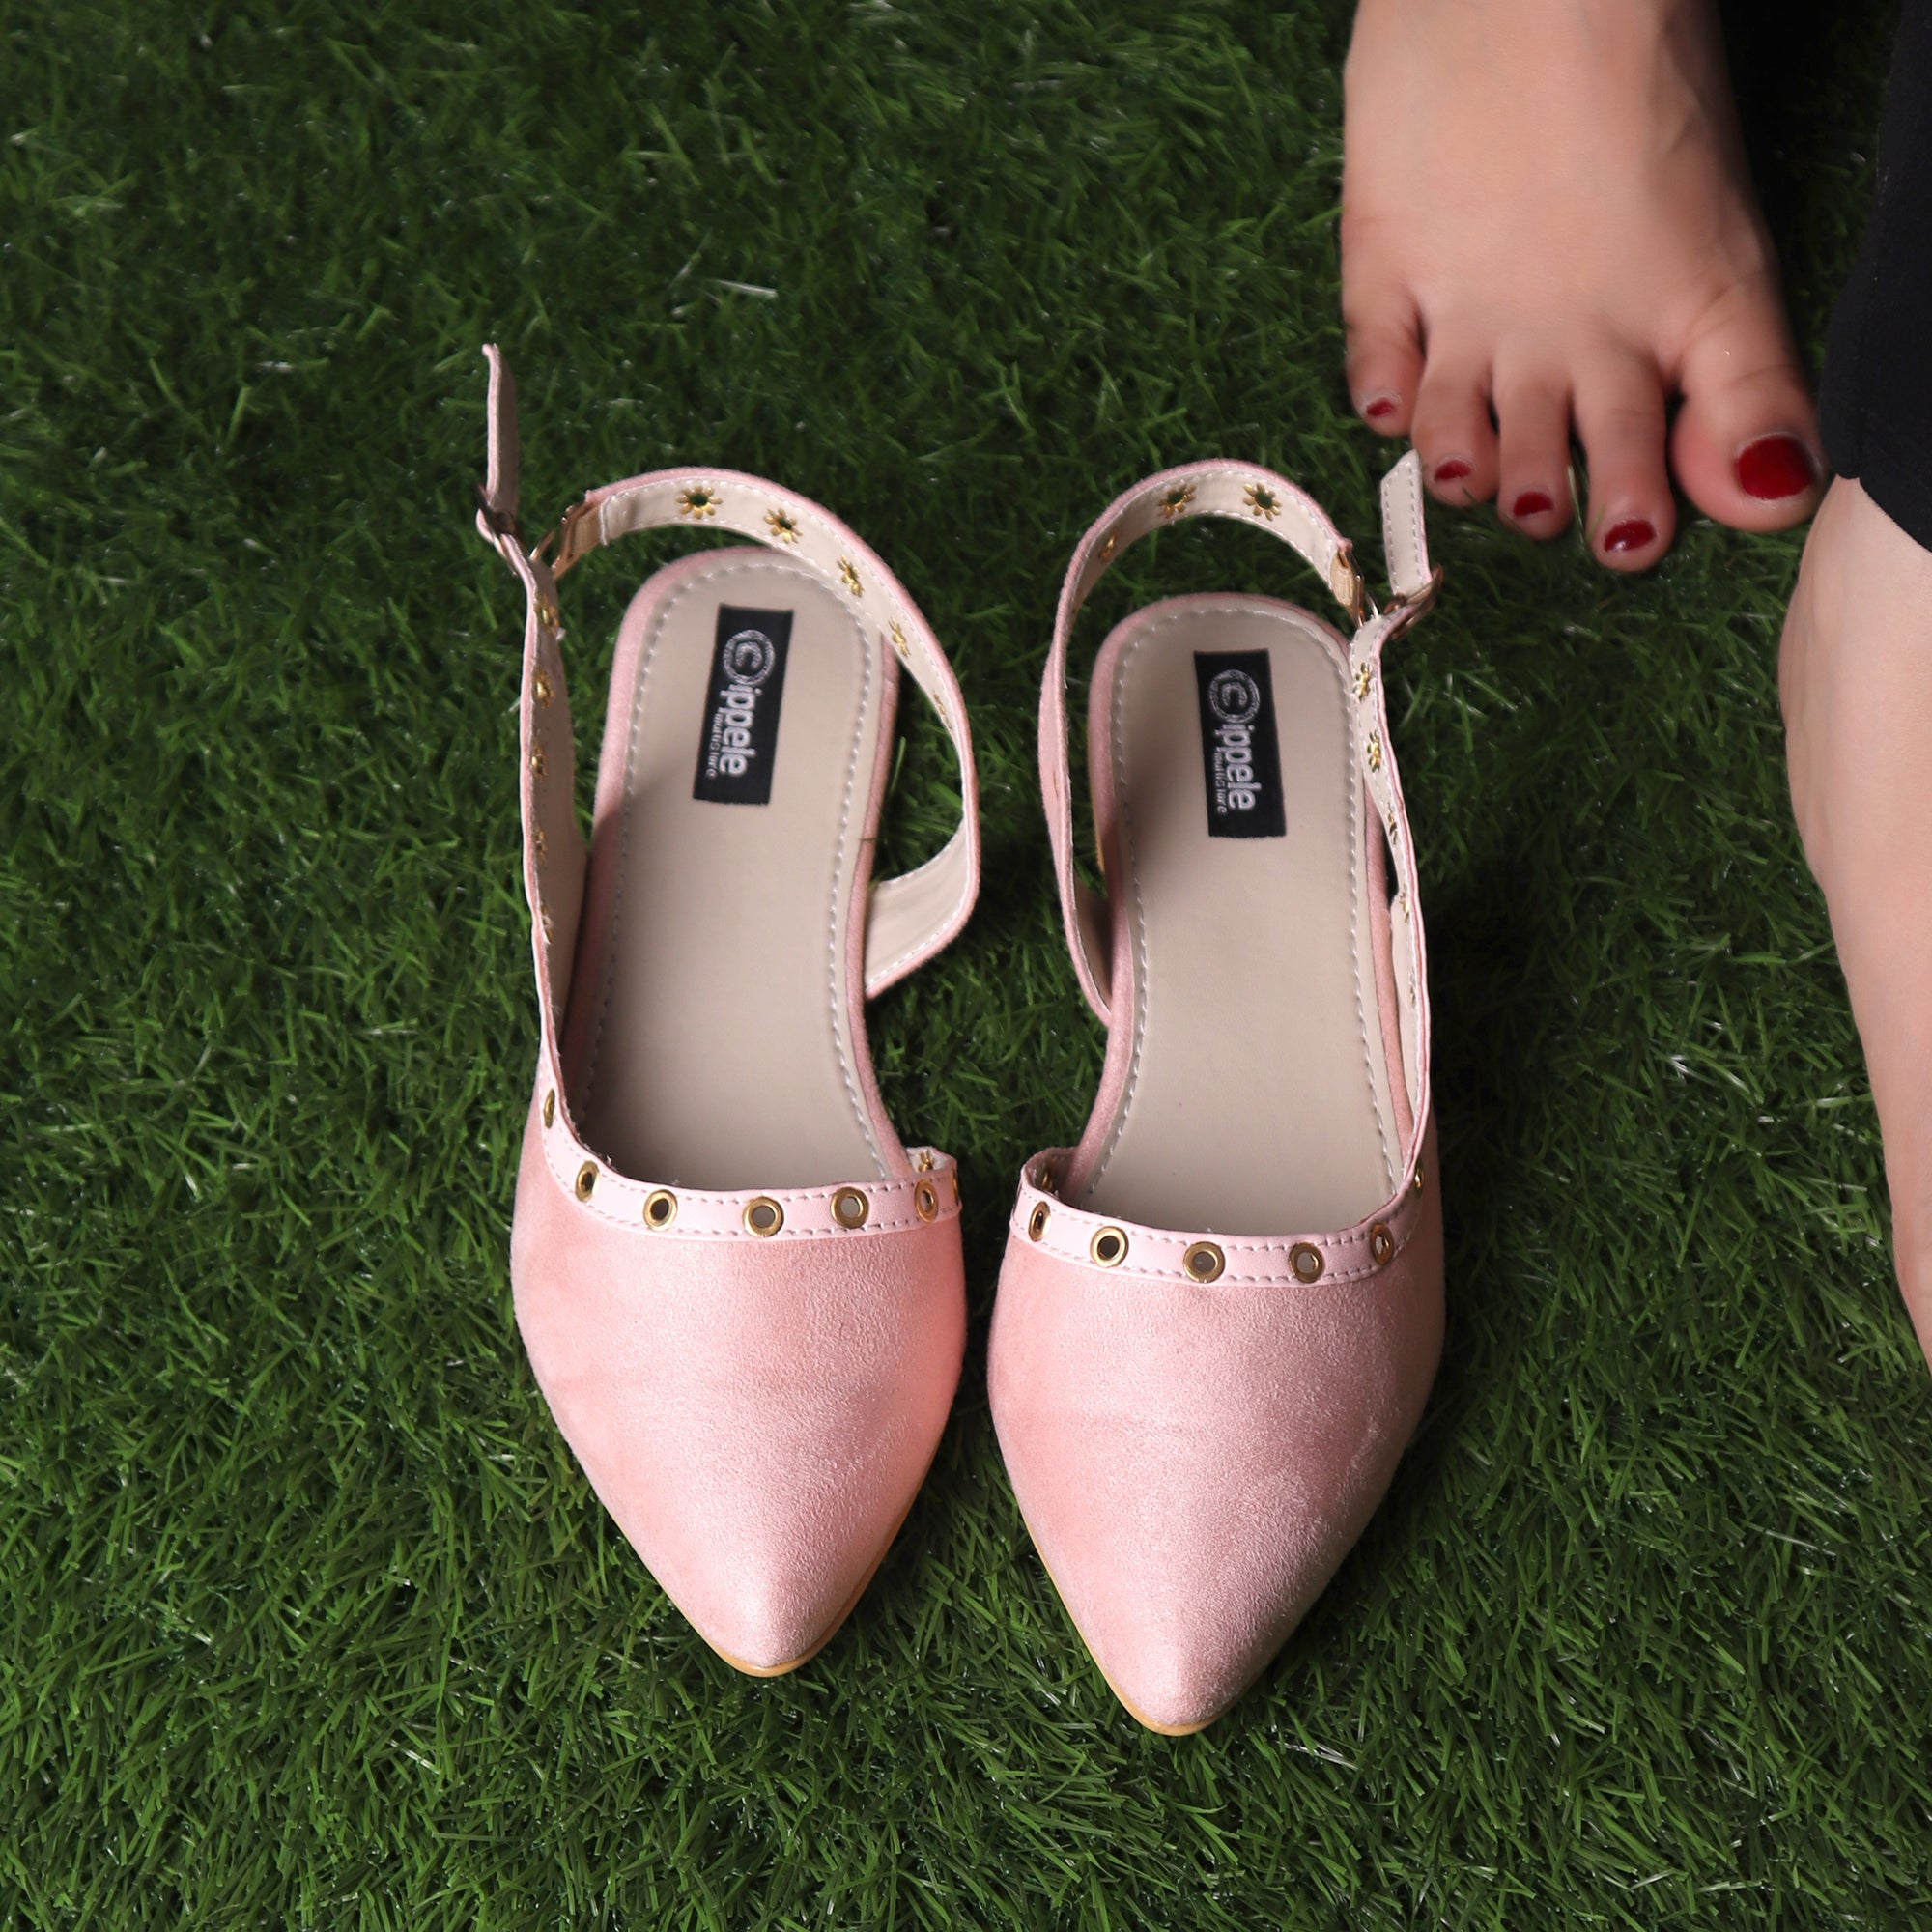 Foot Wear,The Misty Breezy Valentino In Baby Pink - Cippele Multi Store